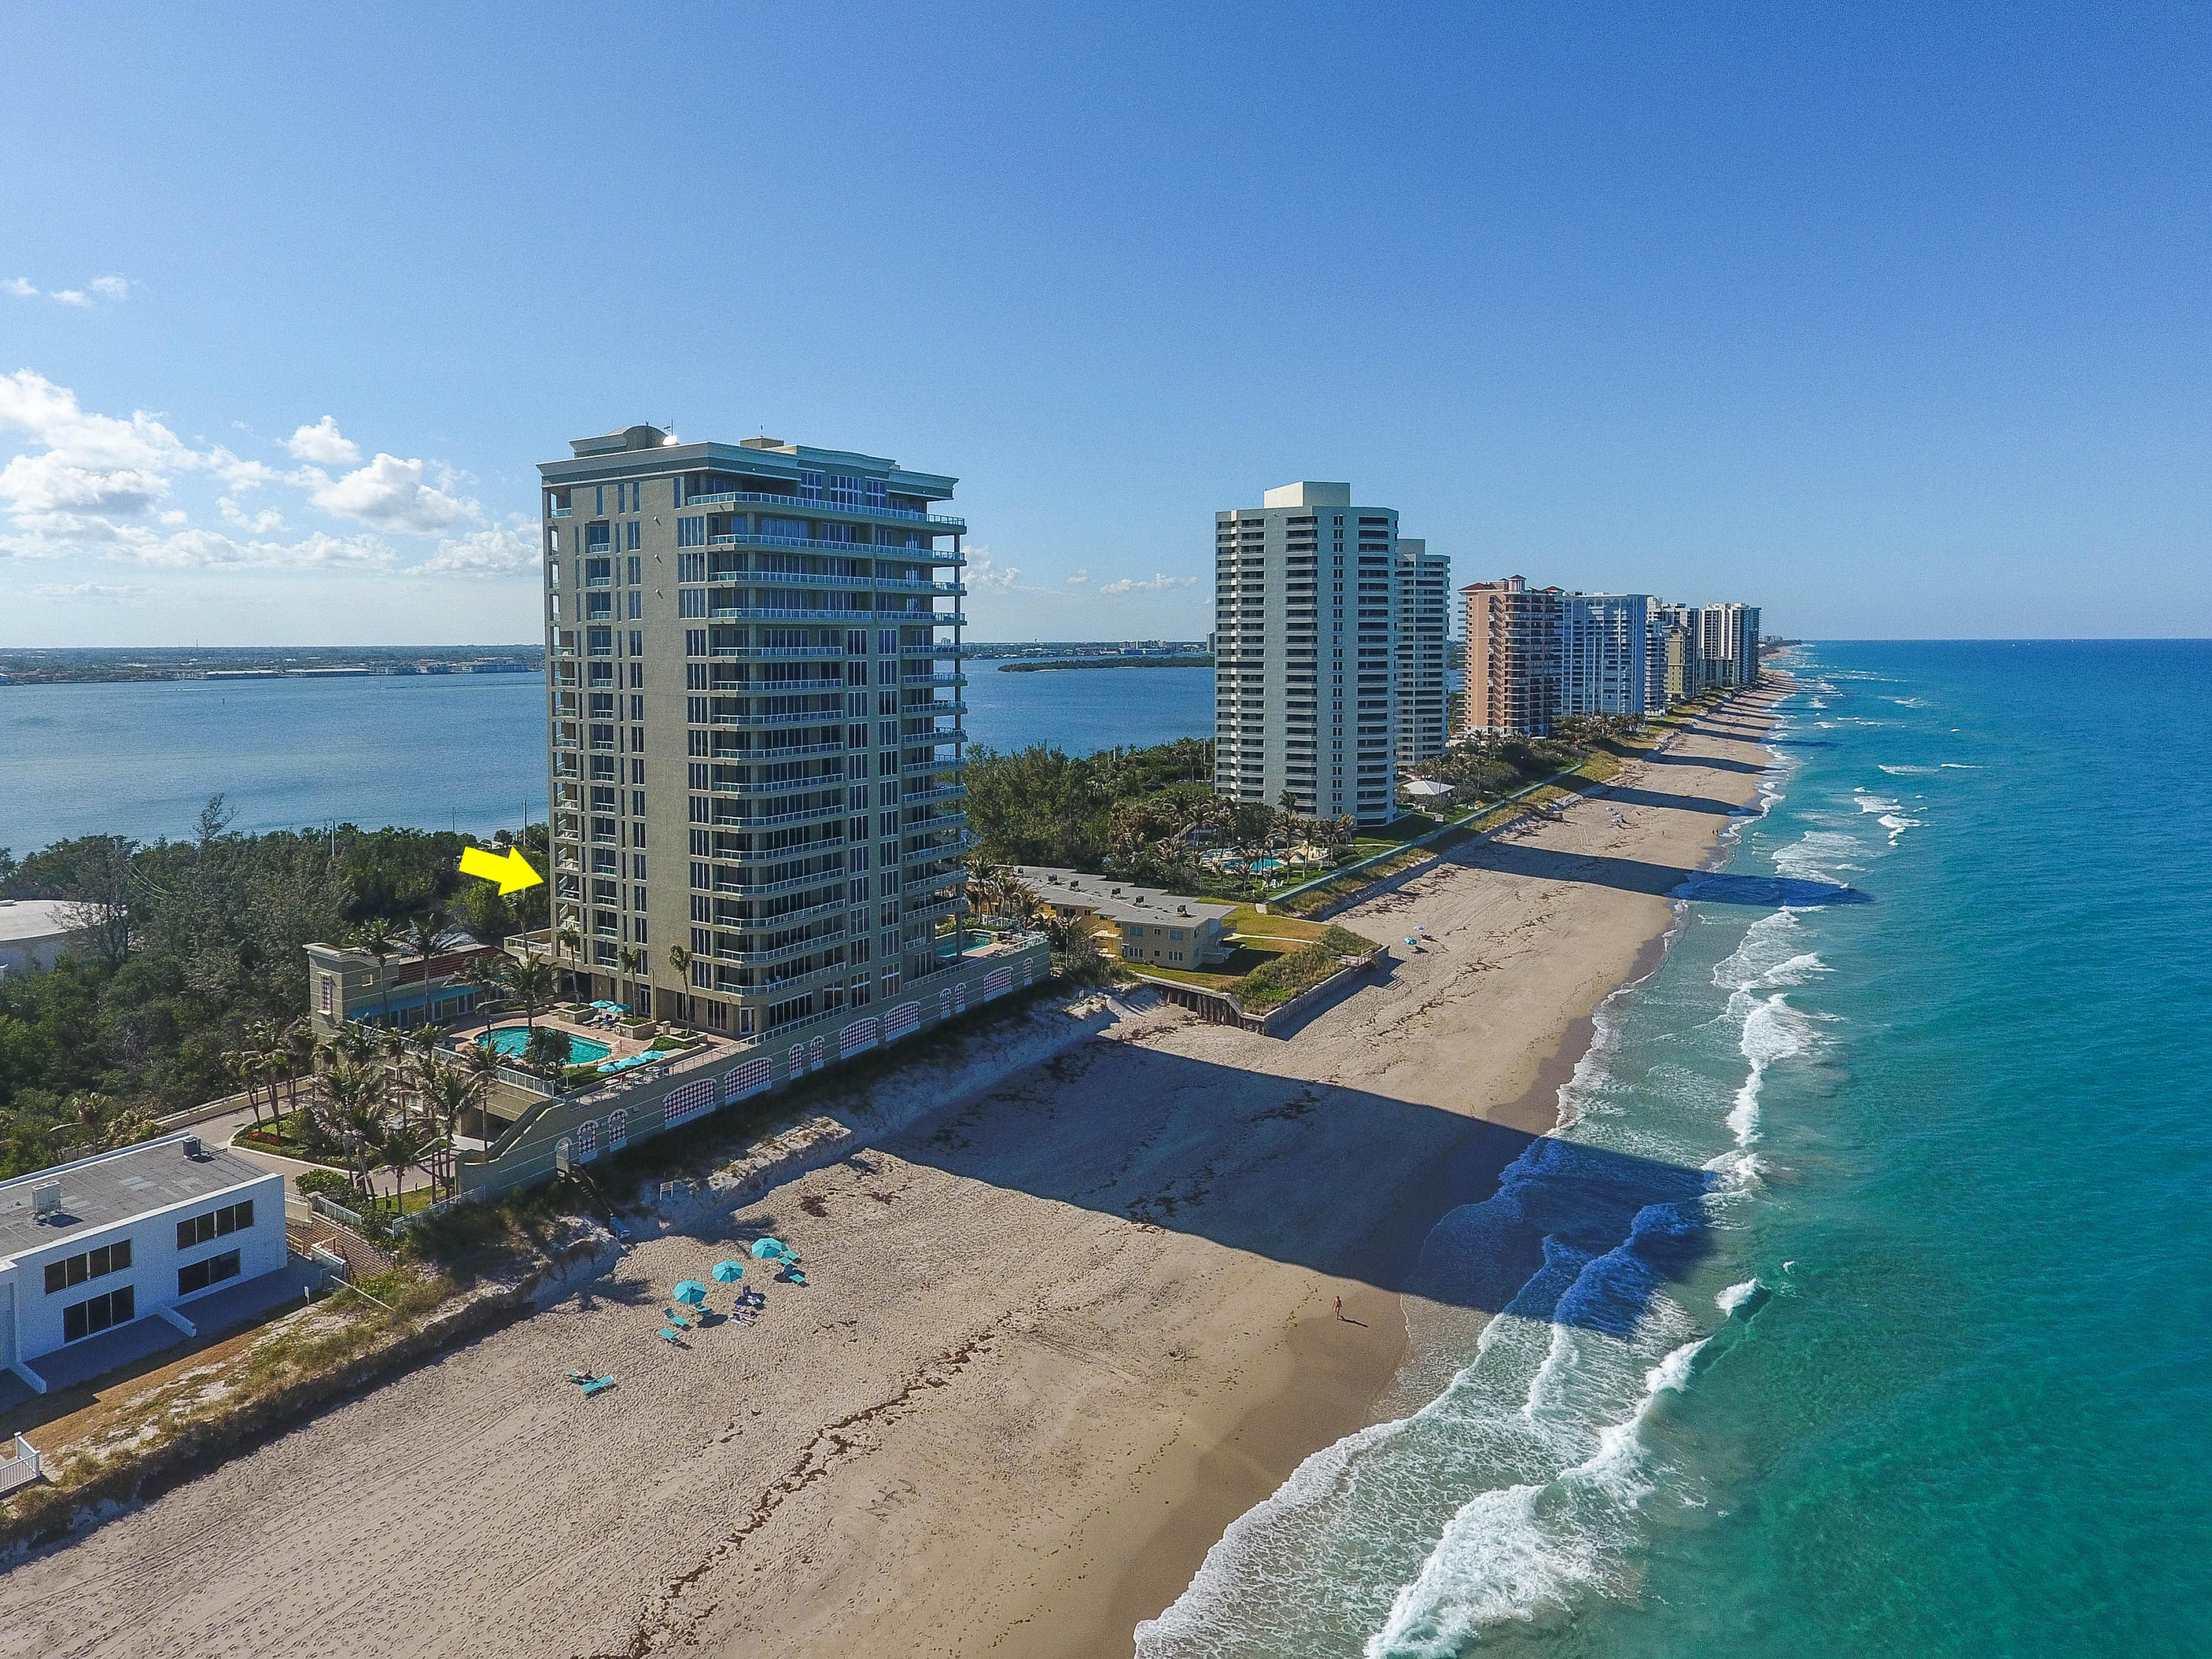 New Home for sale at 5050 Ocean Drive in Singer Island